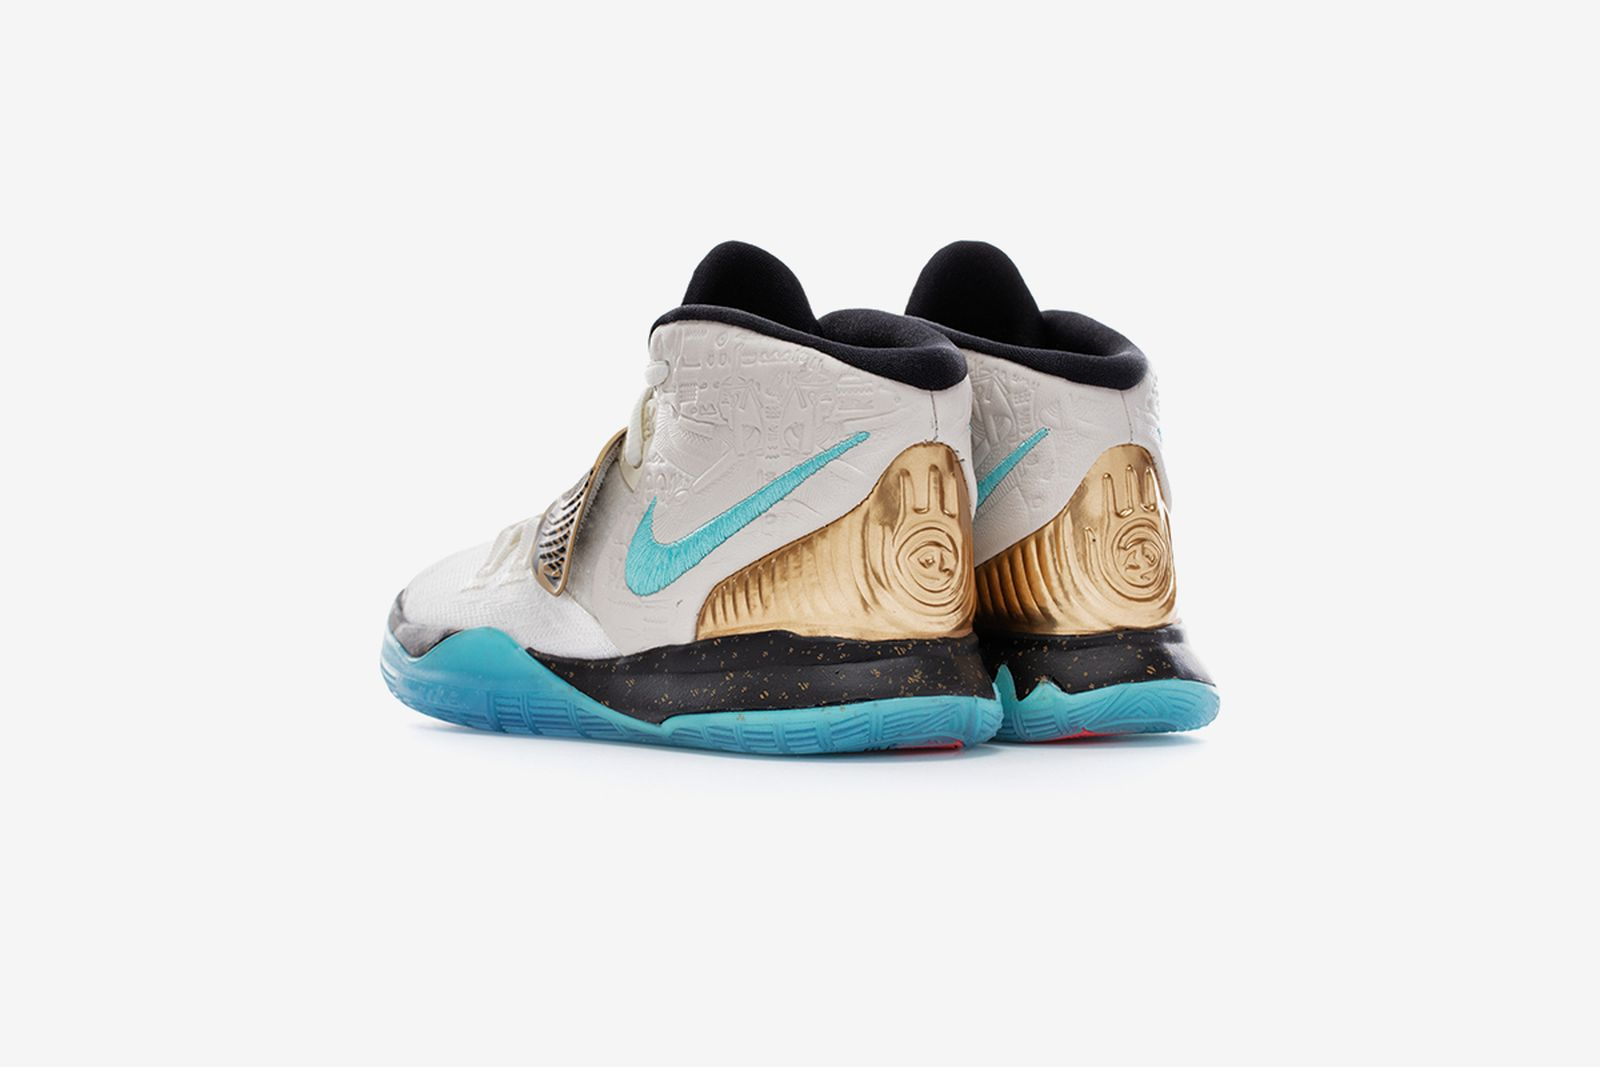 concepts-nike-kyrie-6-release-date-price-17